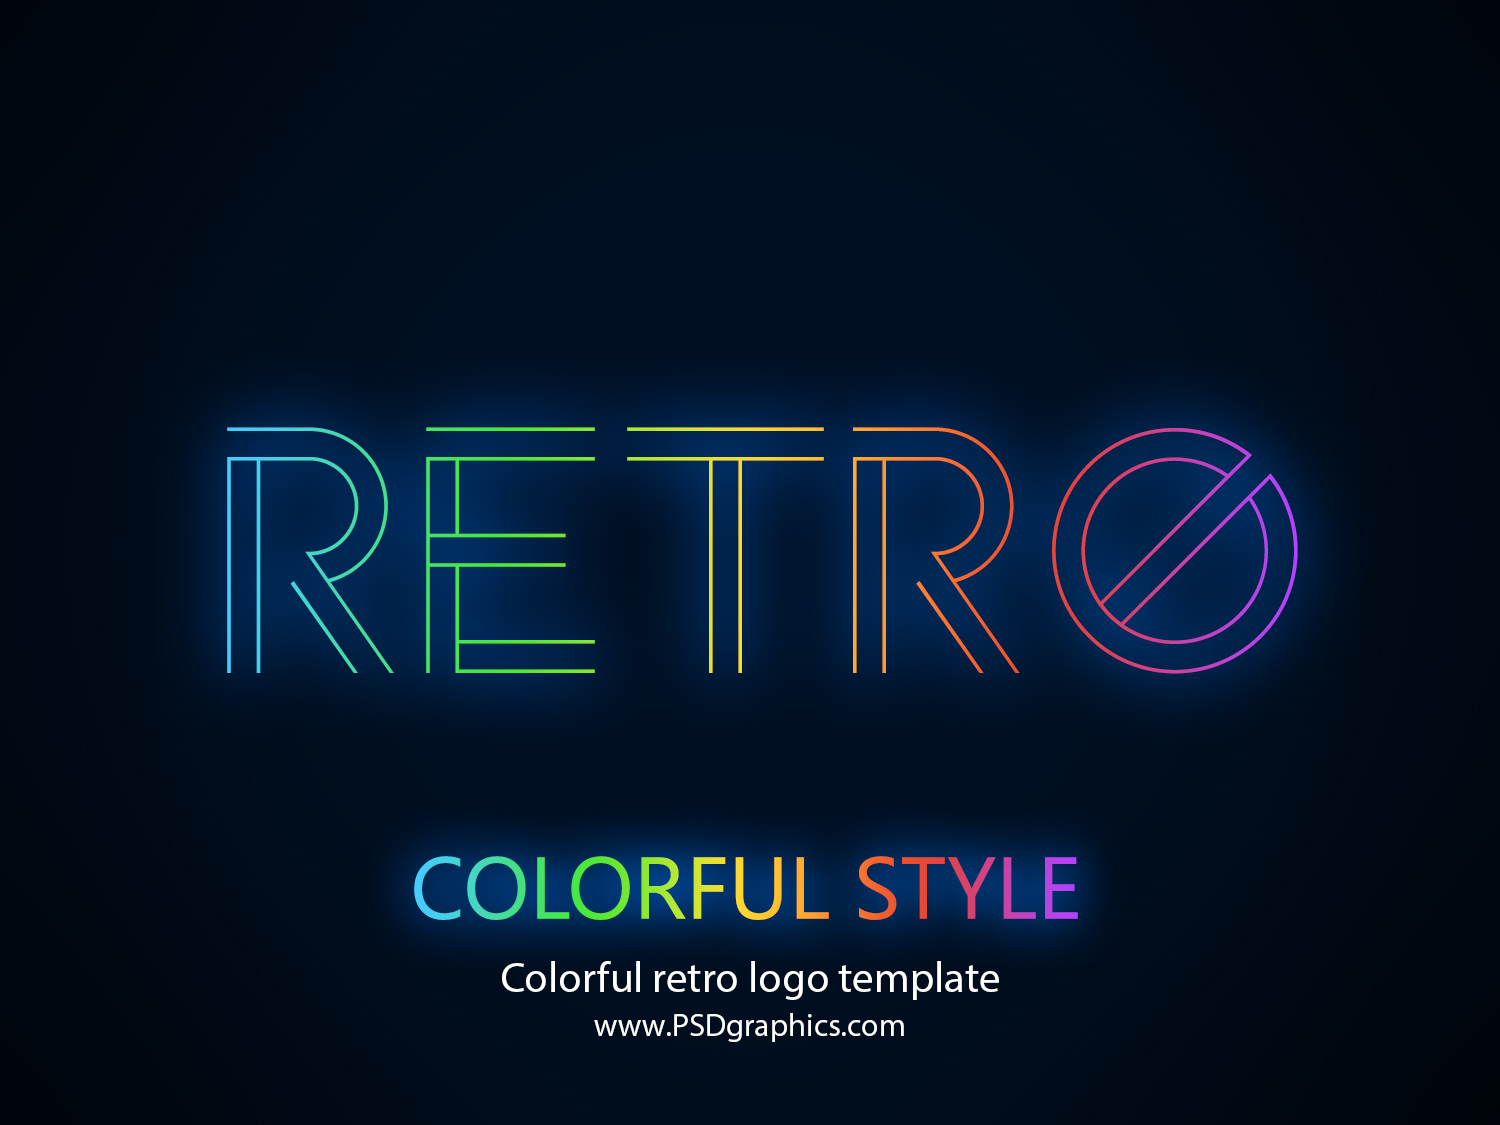 colorful retro logo template (psd) | psdgraphics